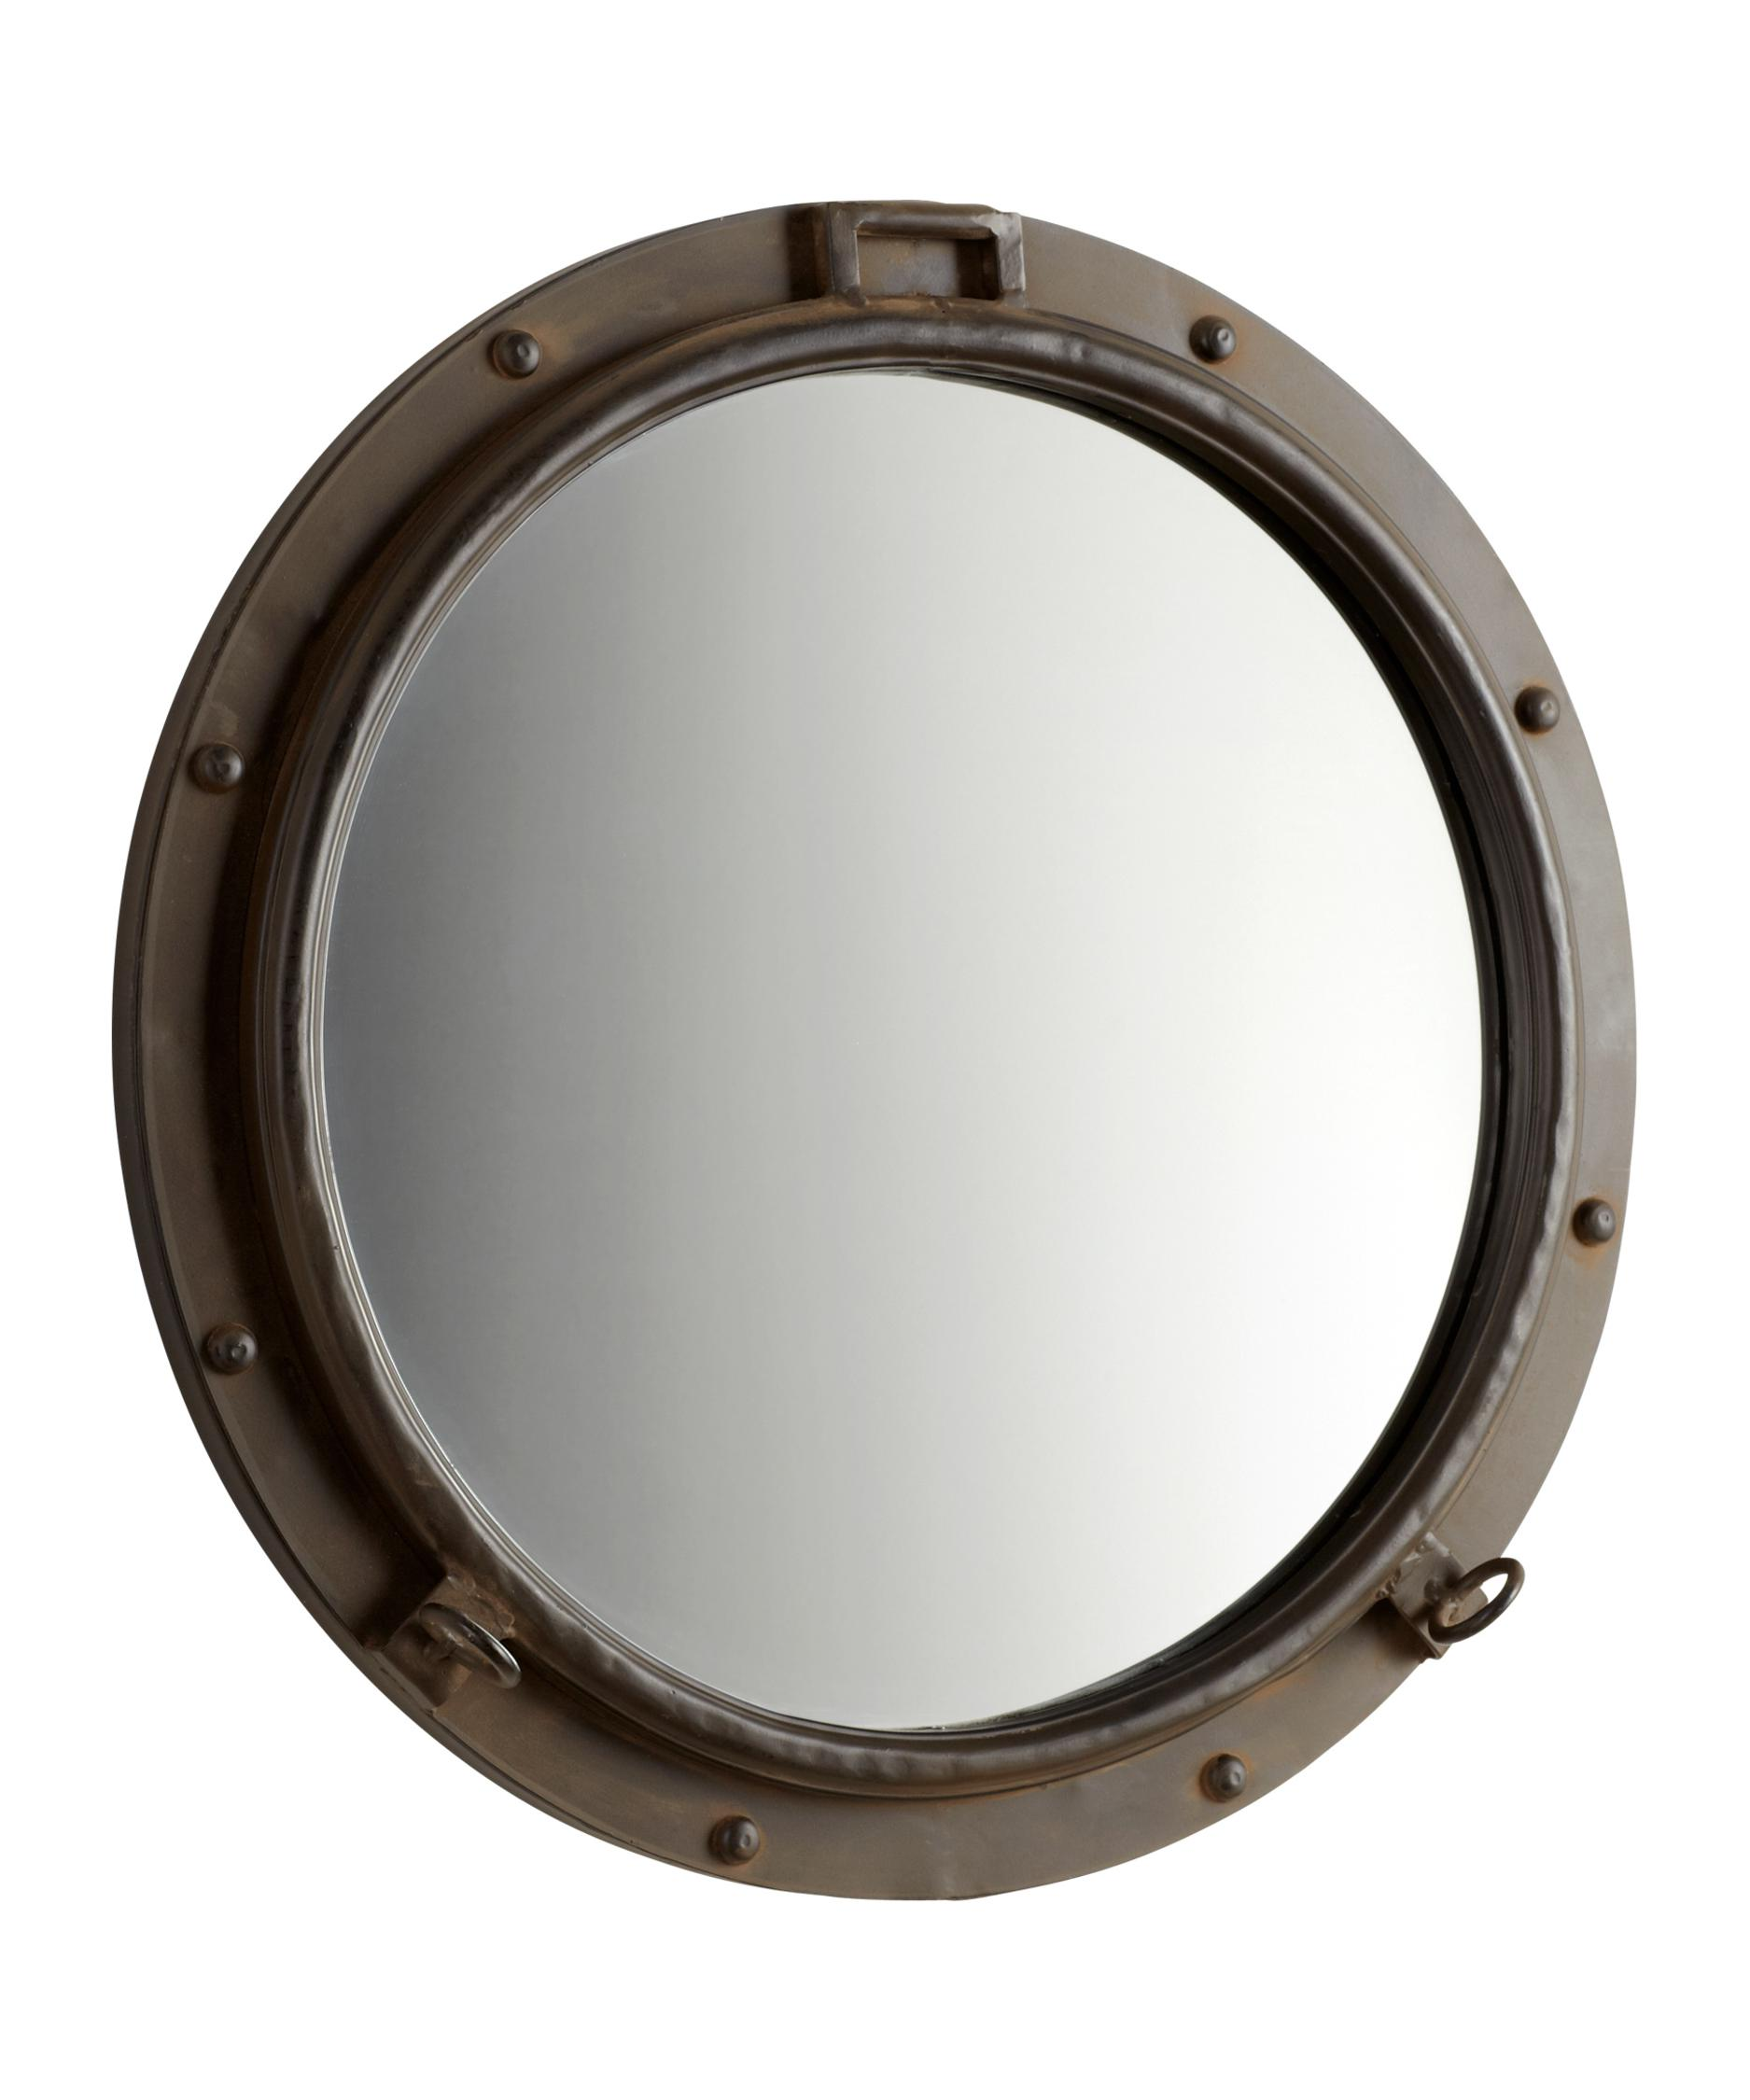 cyan design 05081 porto wall mirror | capitol lighting 1